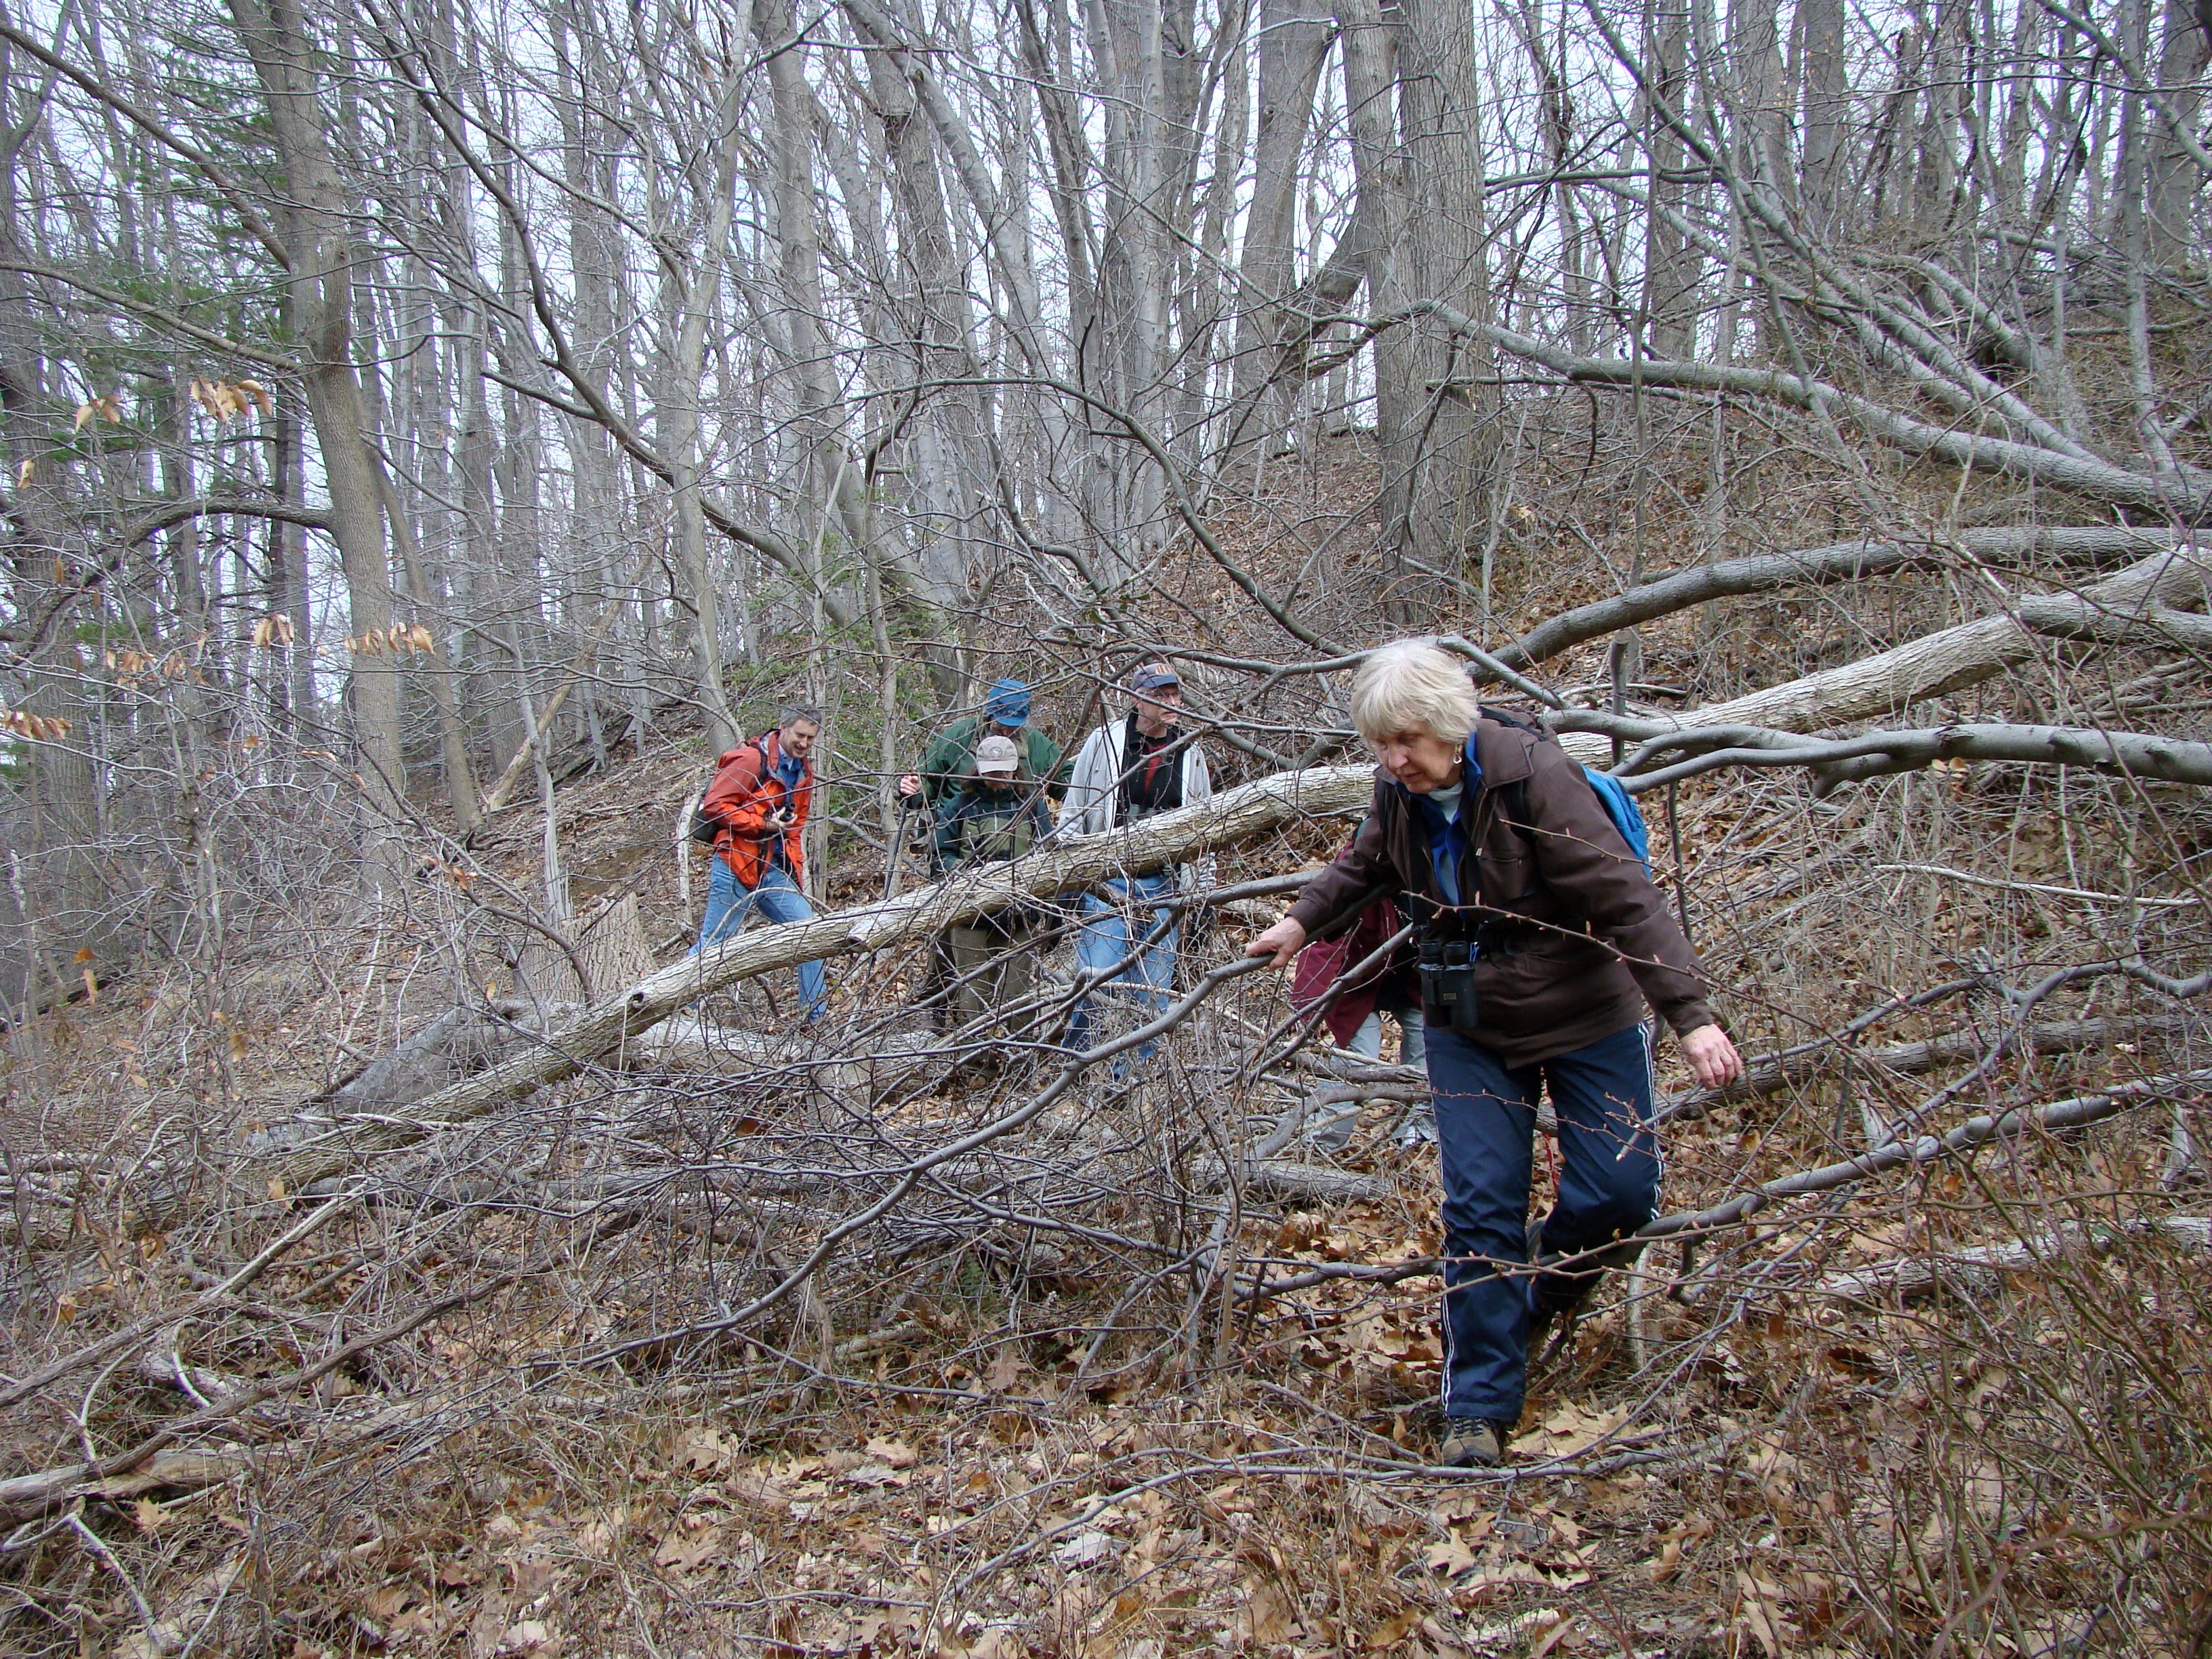 Participants on the Hoopes Reservoir hike scramble through some brush.